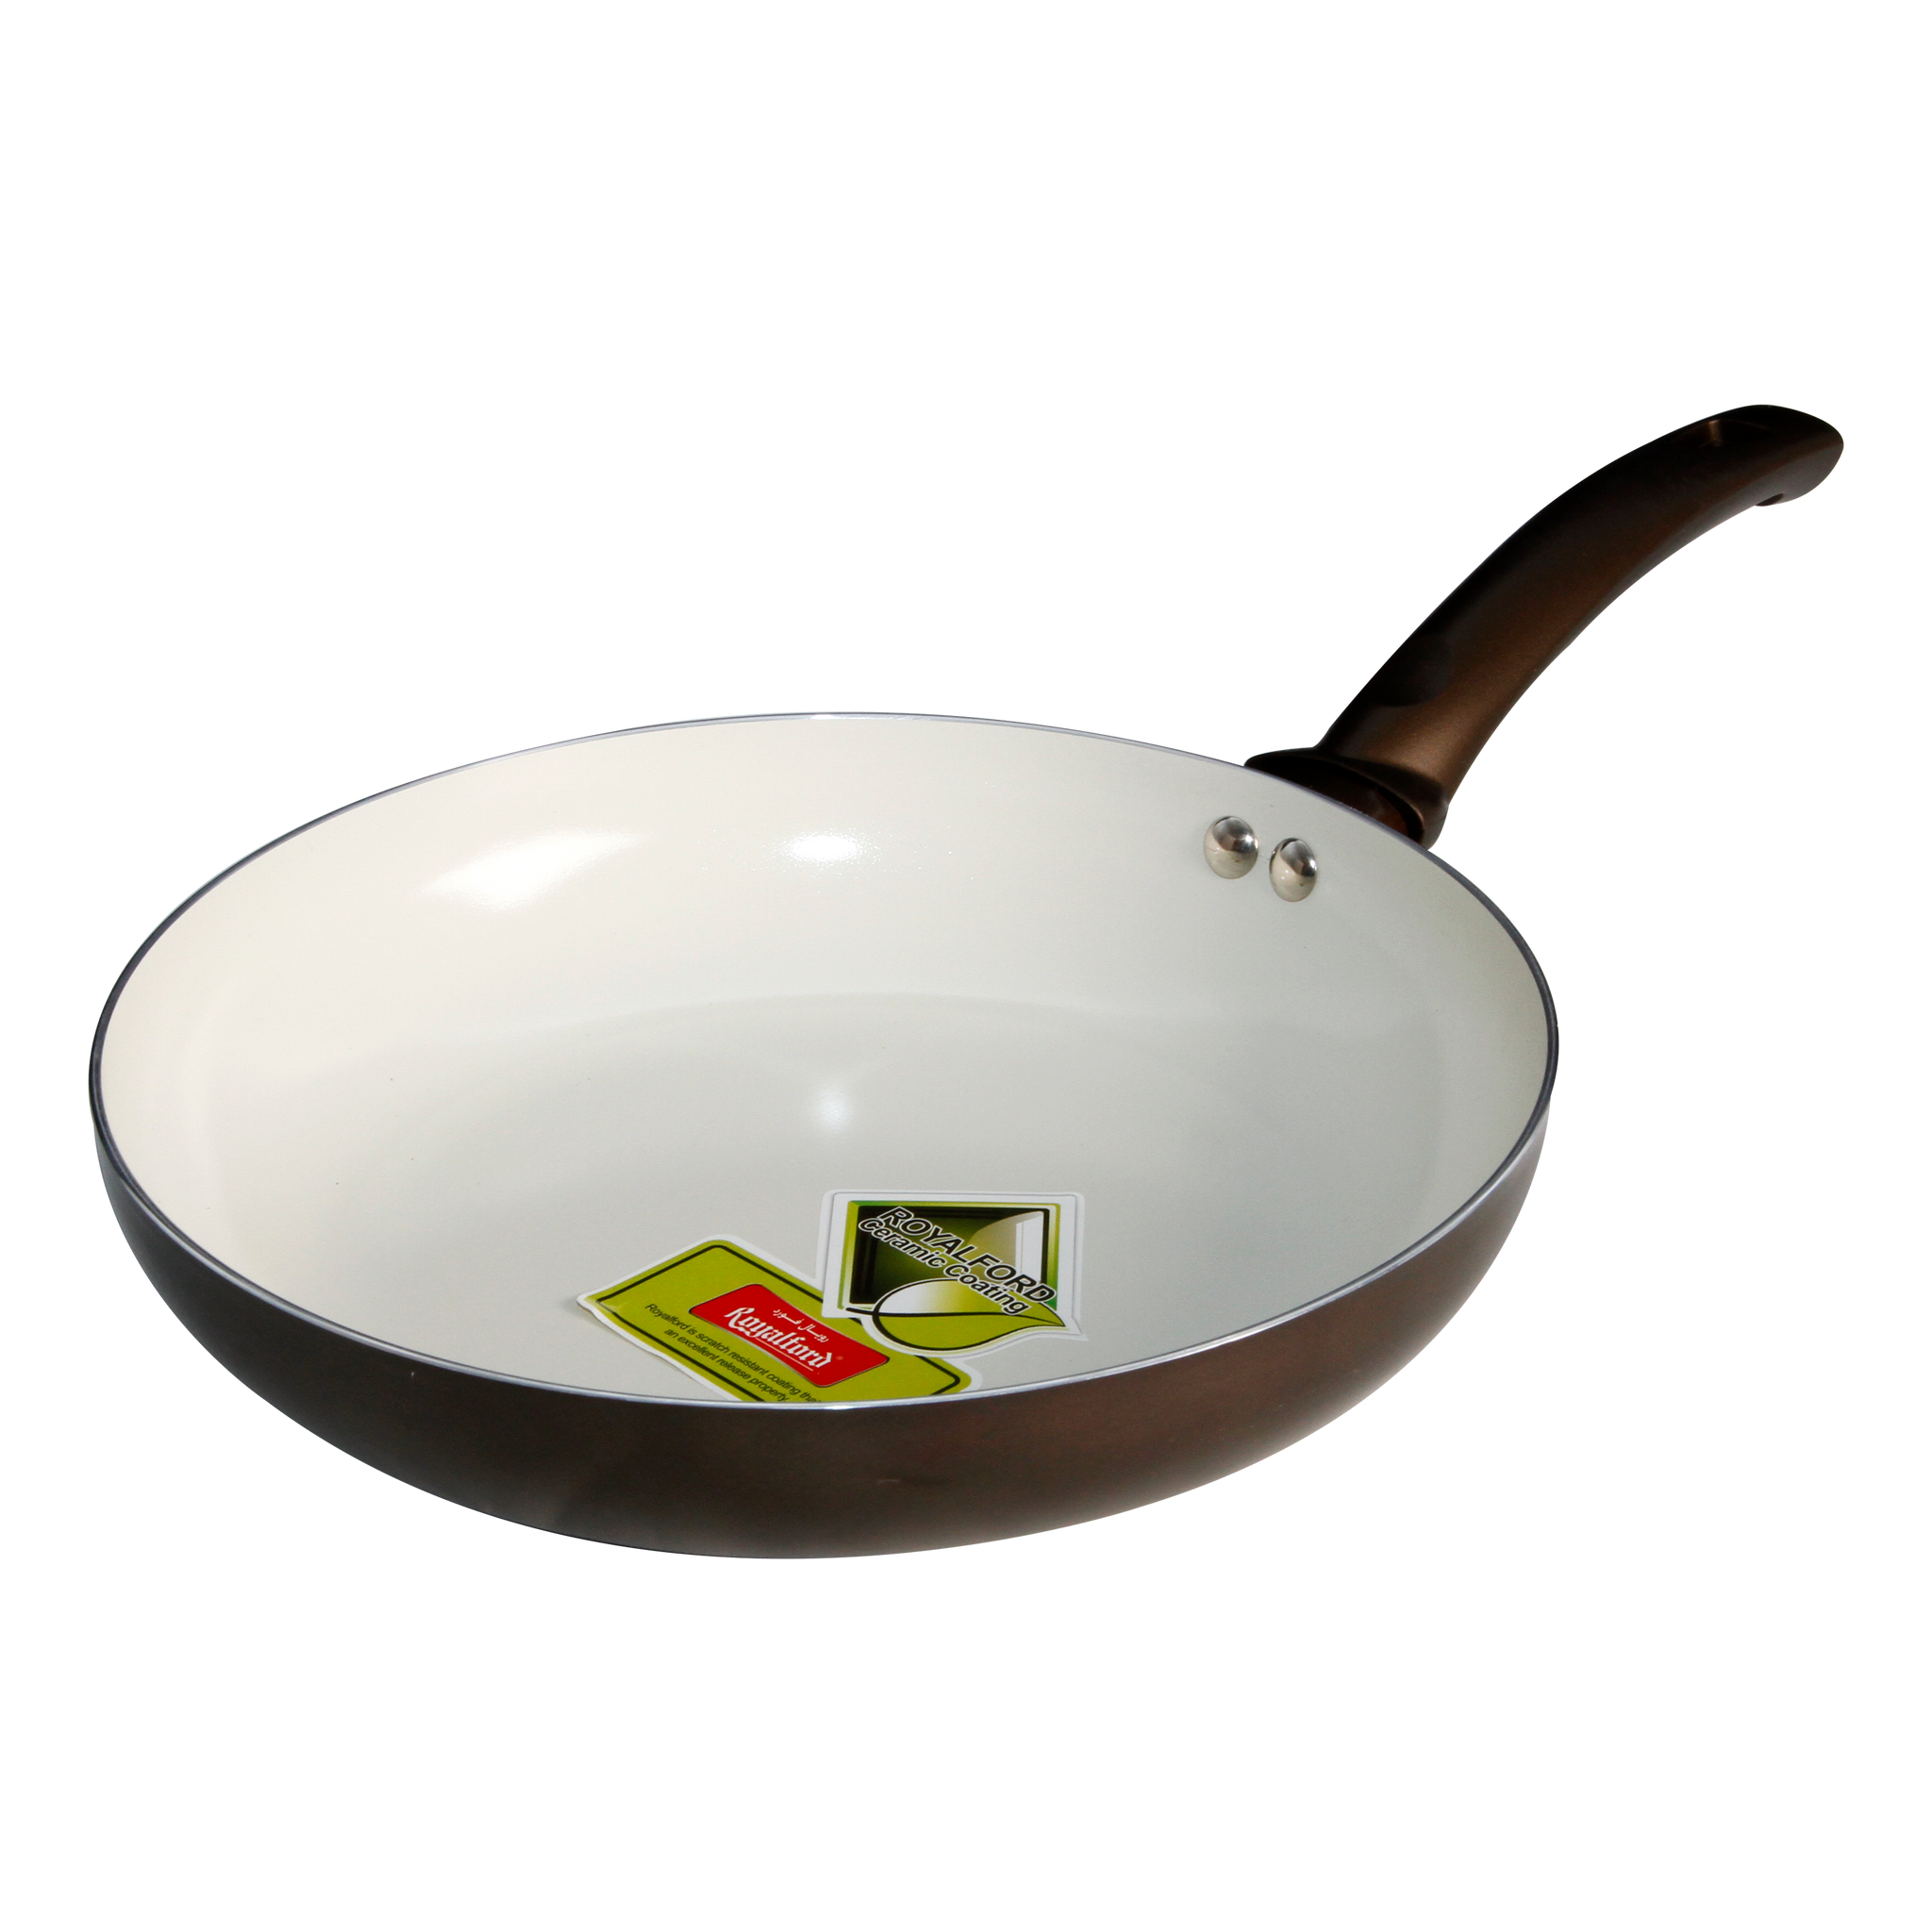 Royalford RF6642 - 26cm Ceramic Induction Base Fry Pan - Non-stick Fry Pan with High Grip Handle & Hanging Loop | Evenly Heating Base | Ideal Frying, Cooking & More